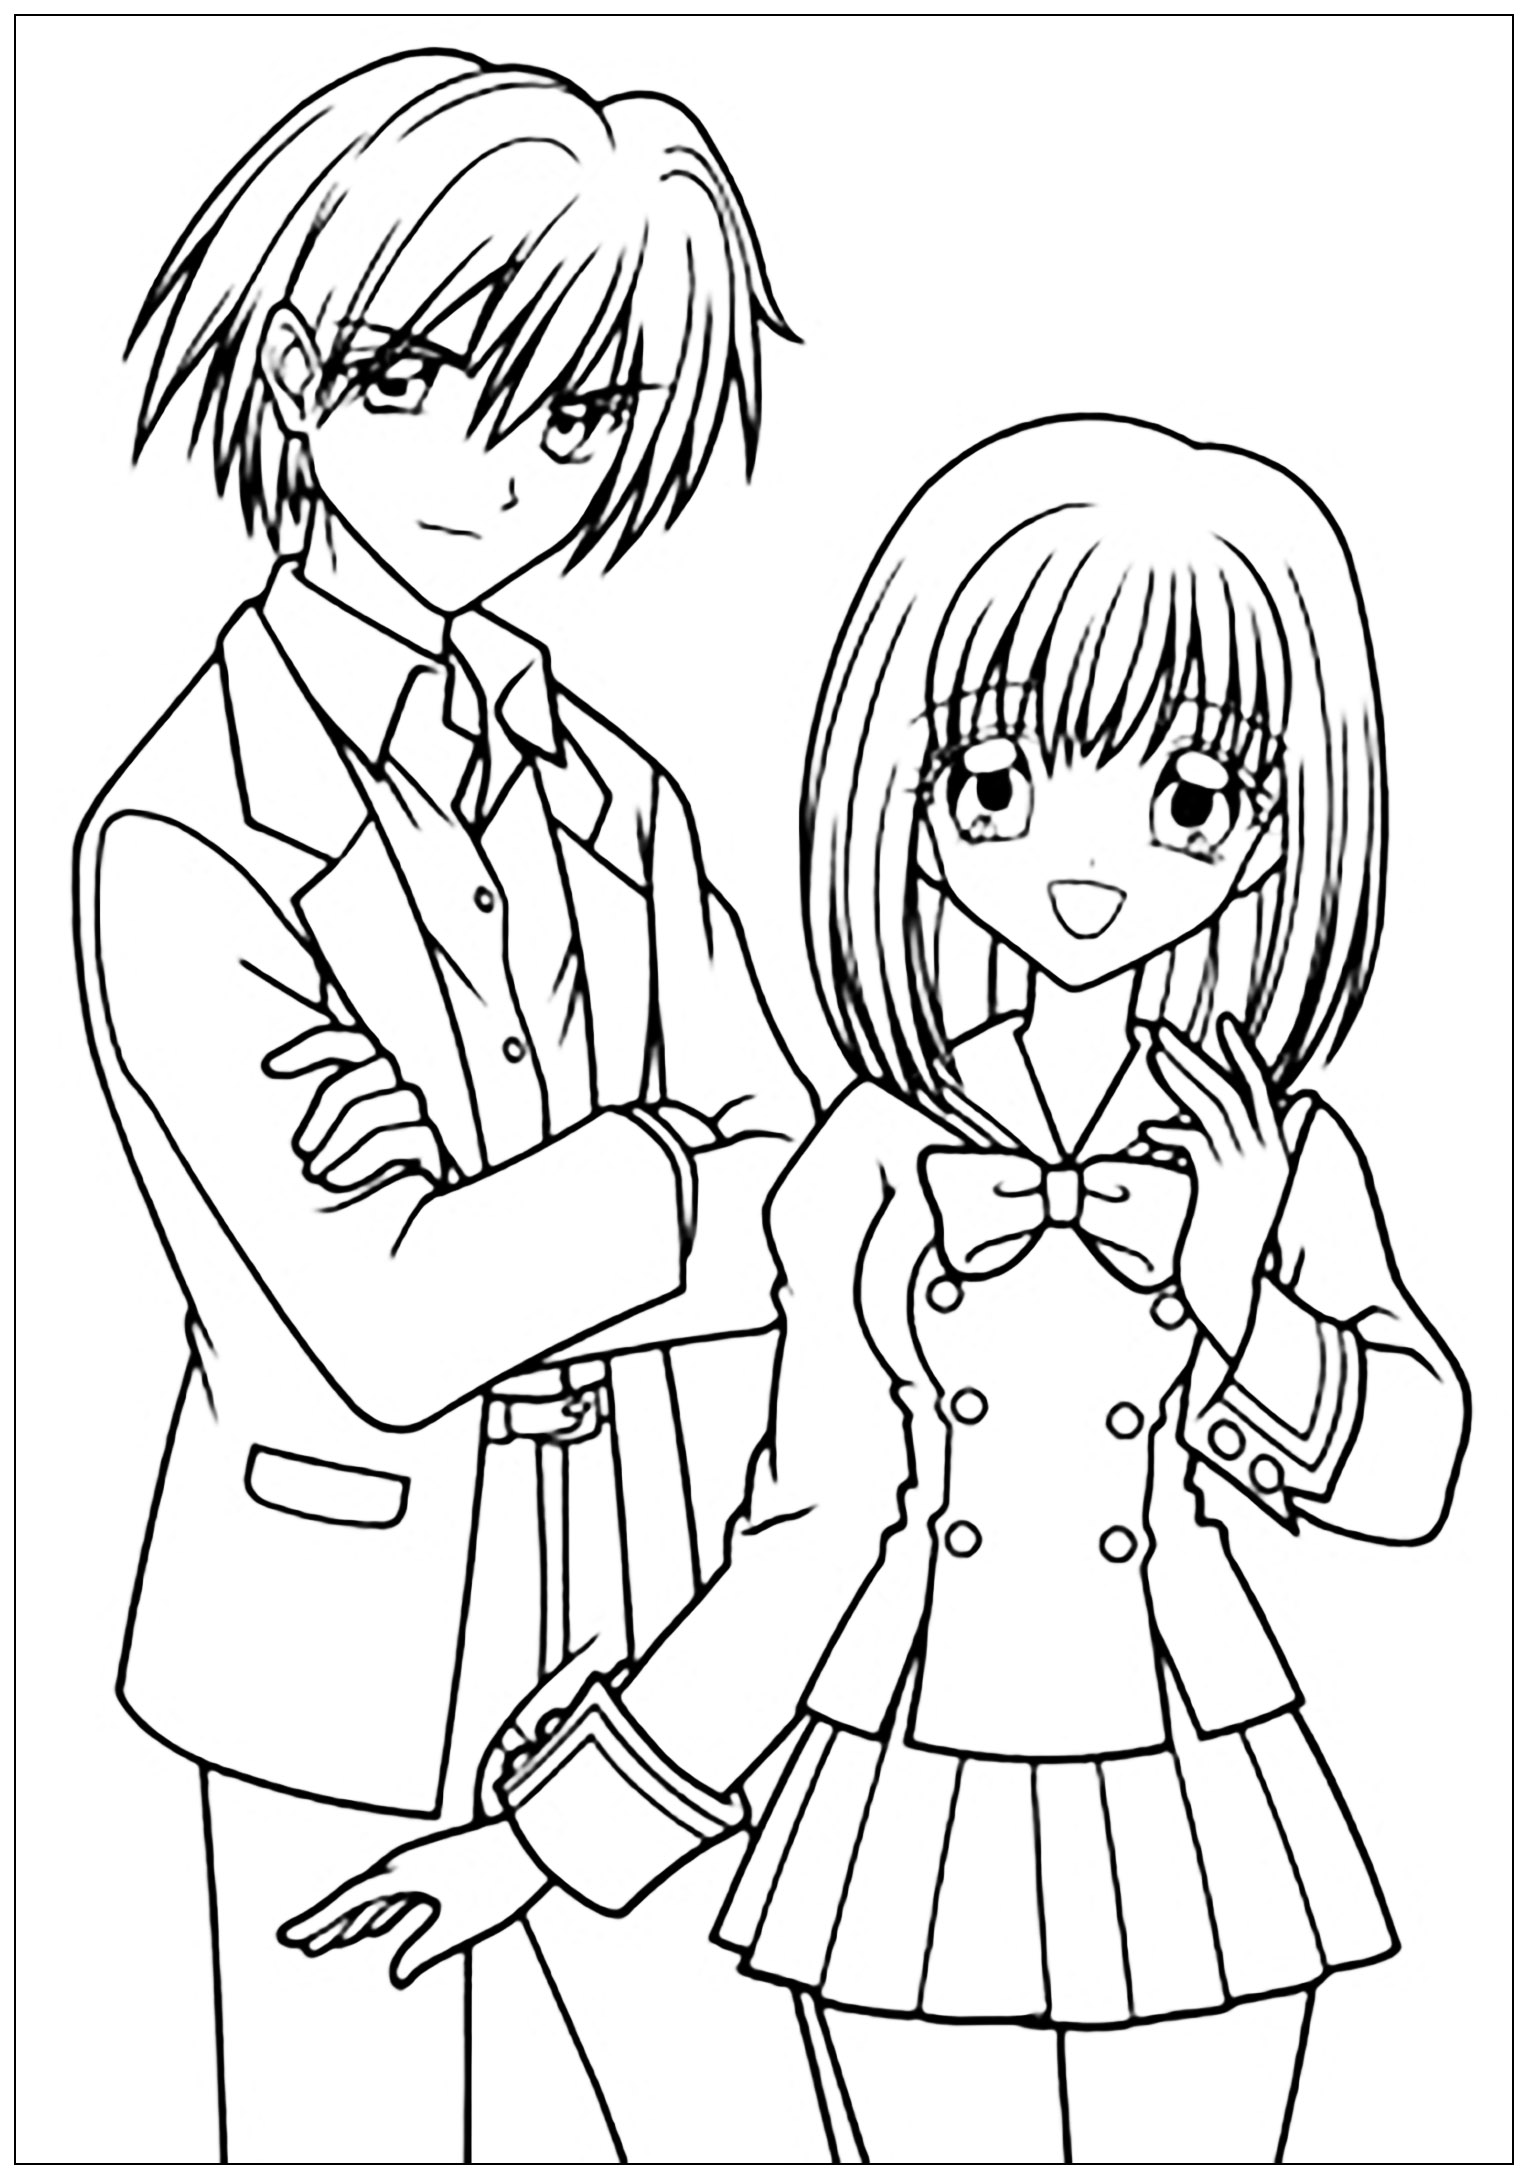 Manga Anime Coloring Pages For Adults Coloring Manga